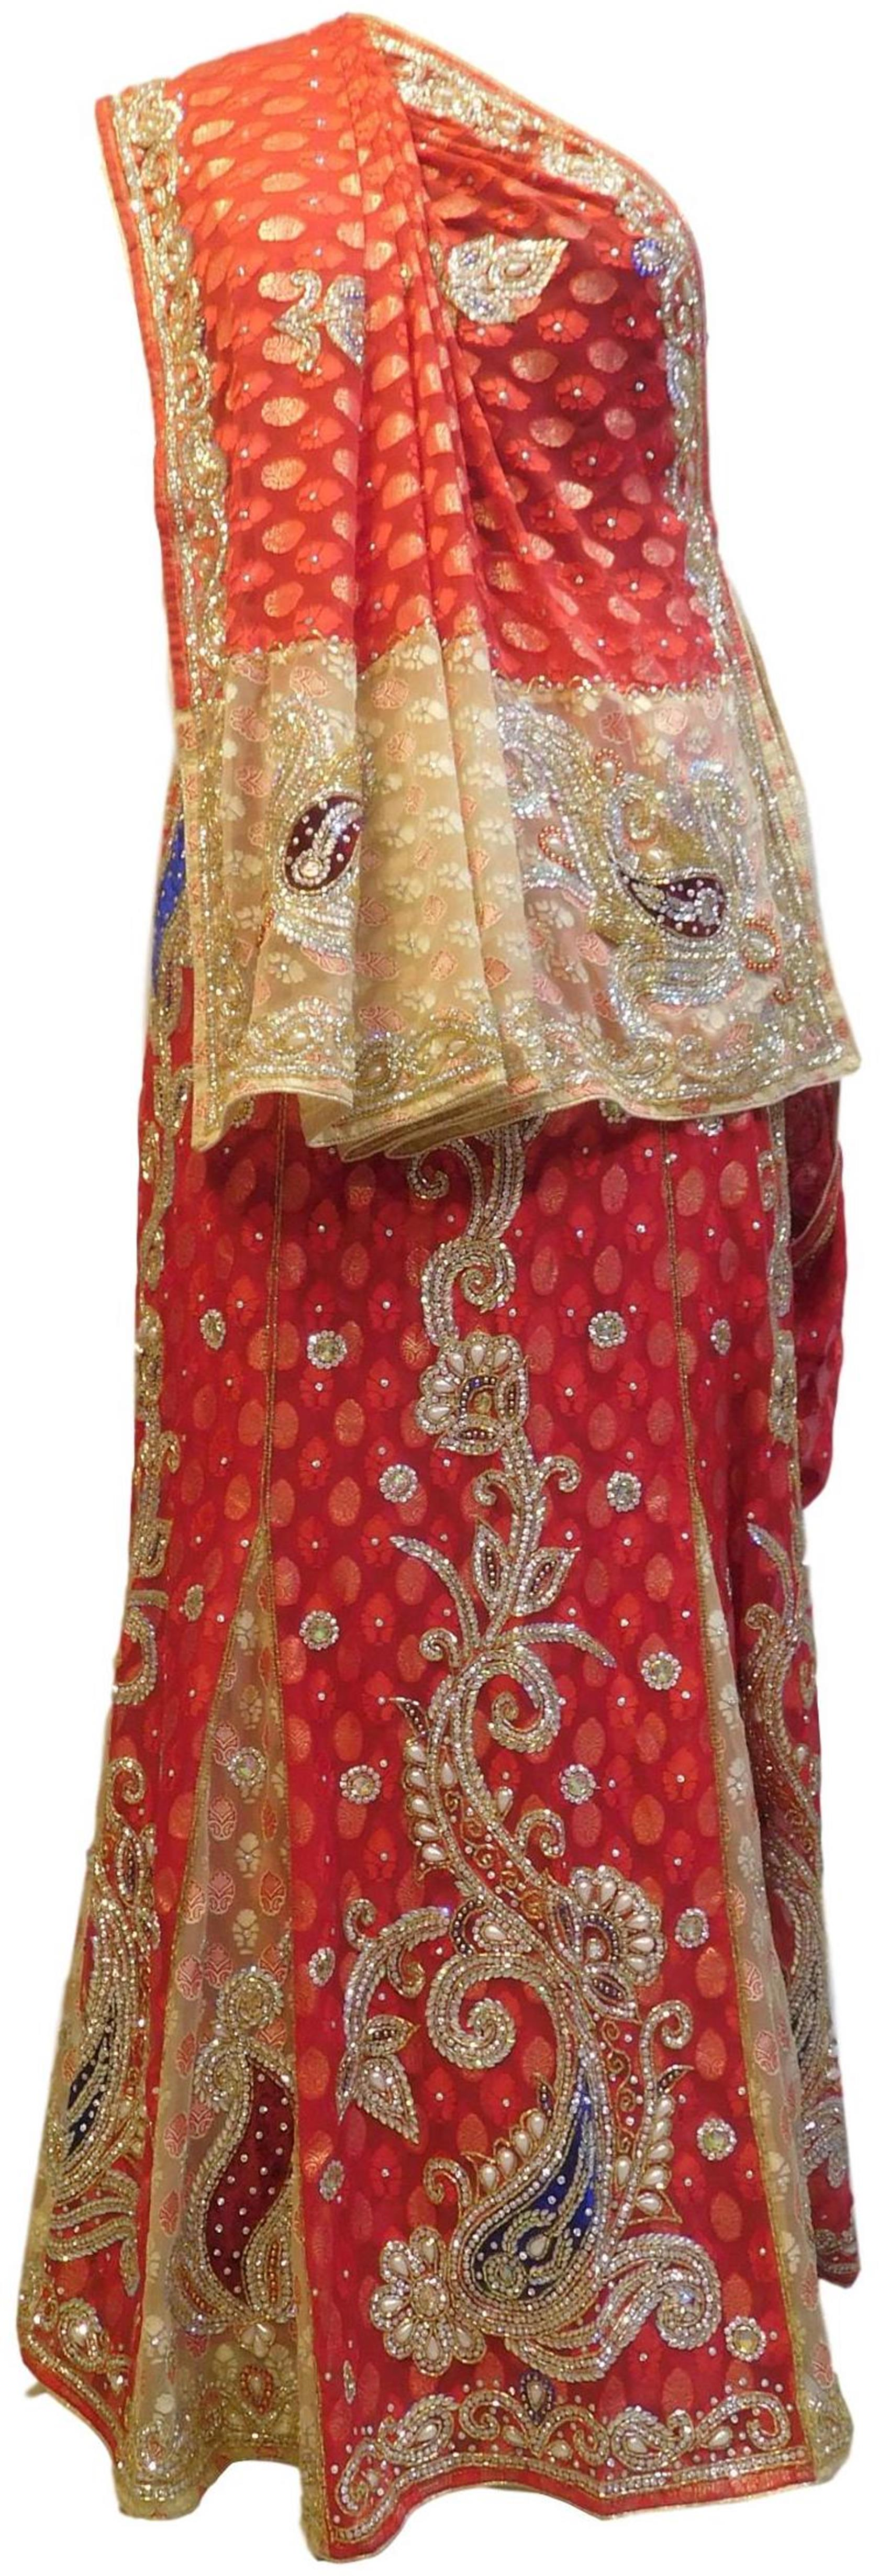 Red & Beige Designer Wedding Party Wear Brasso Hand Embroidery Beads Cutdana Stone Work Bridal Saree Sari E353